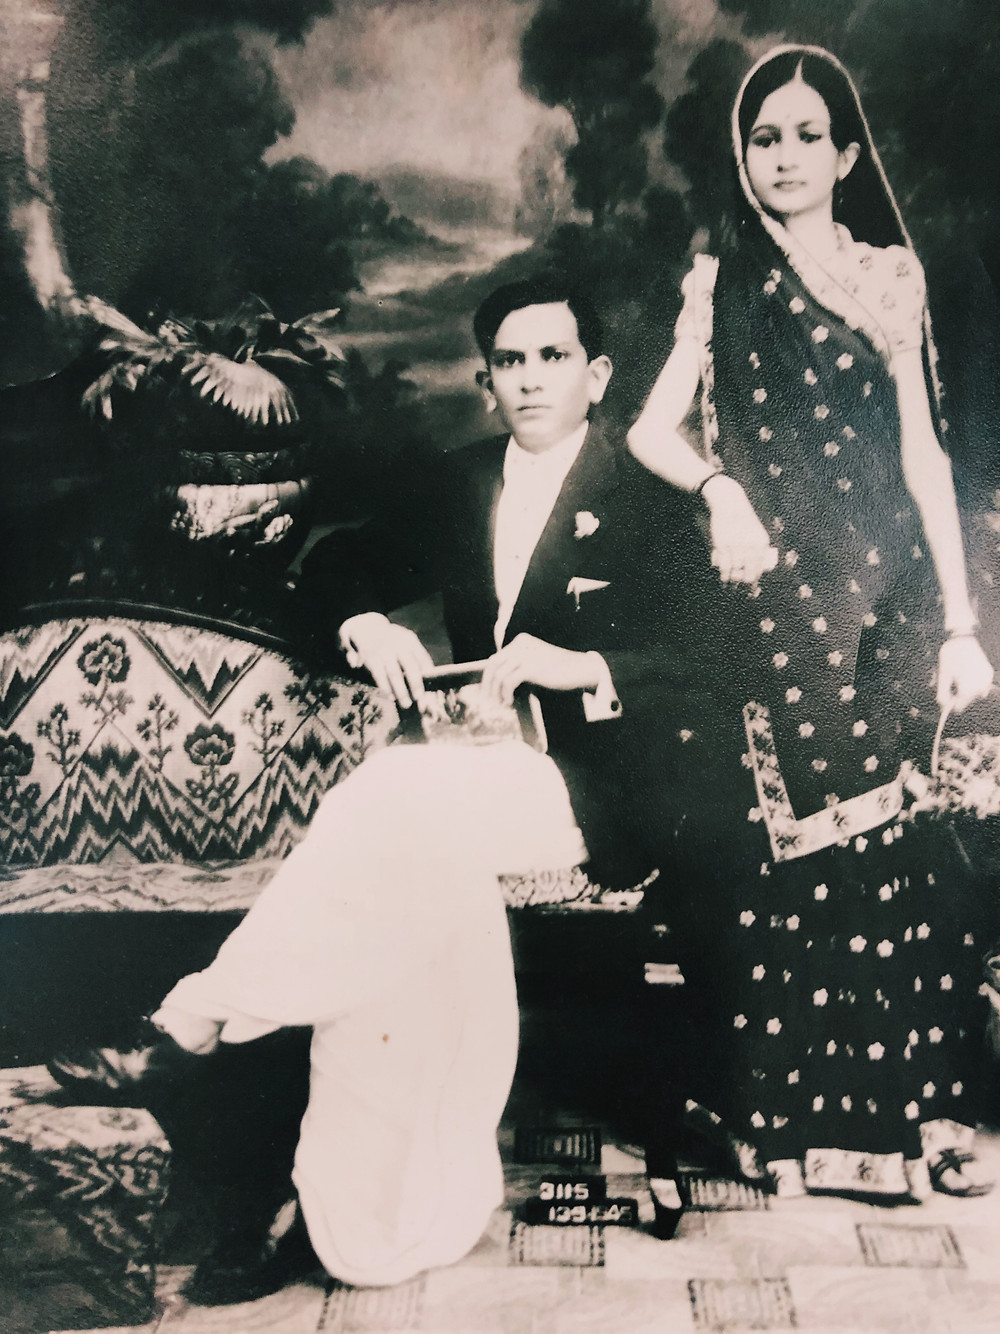 A photograph of Rushi's grandparents in formal wear.